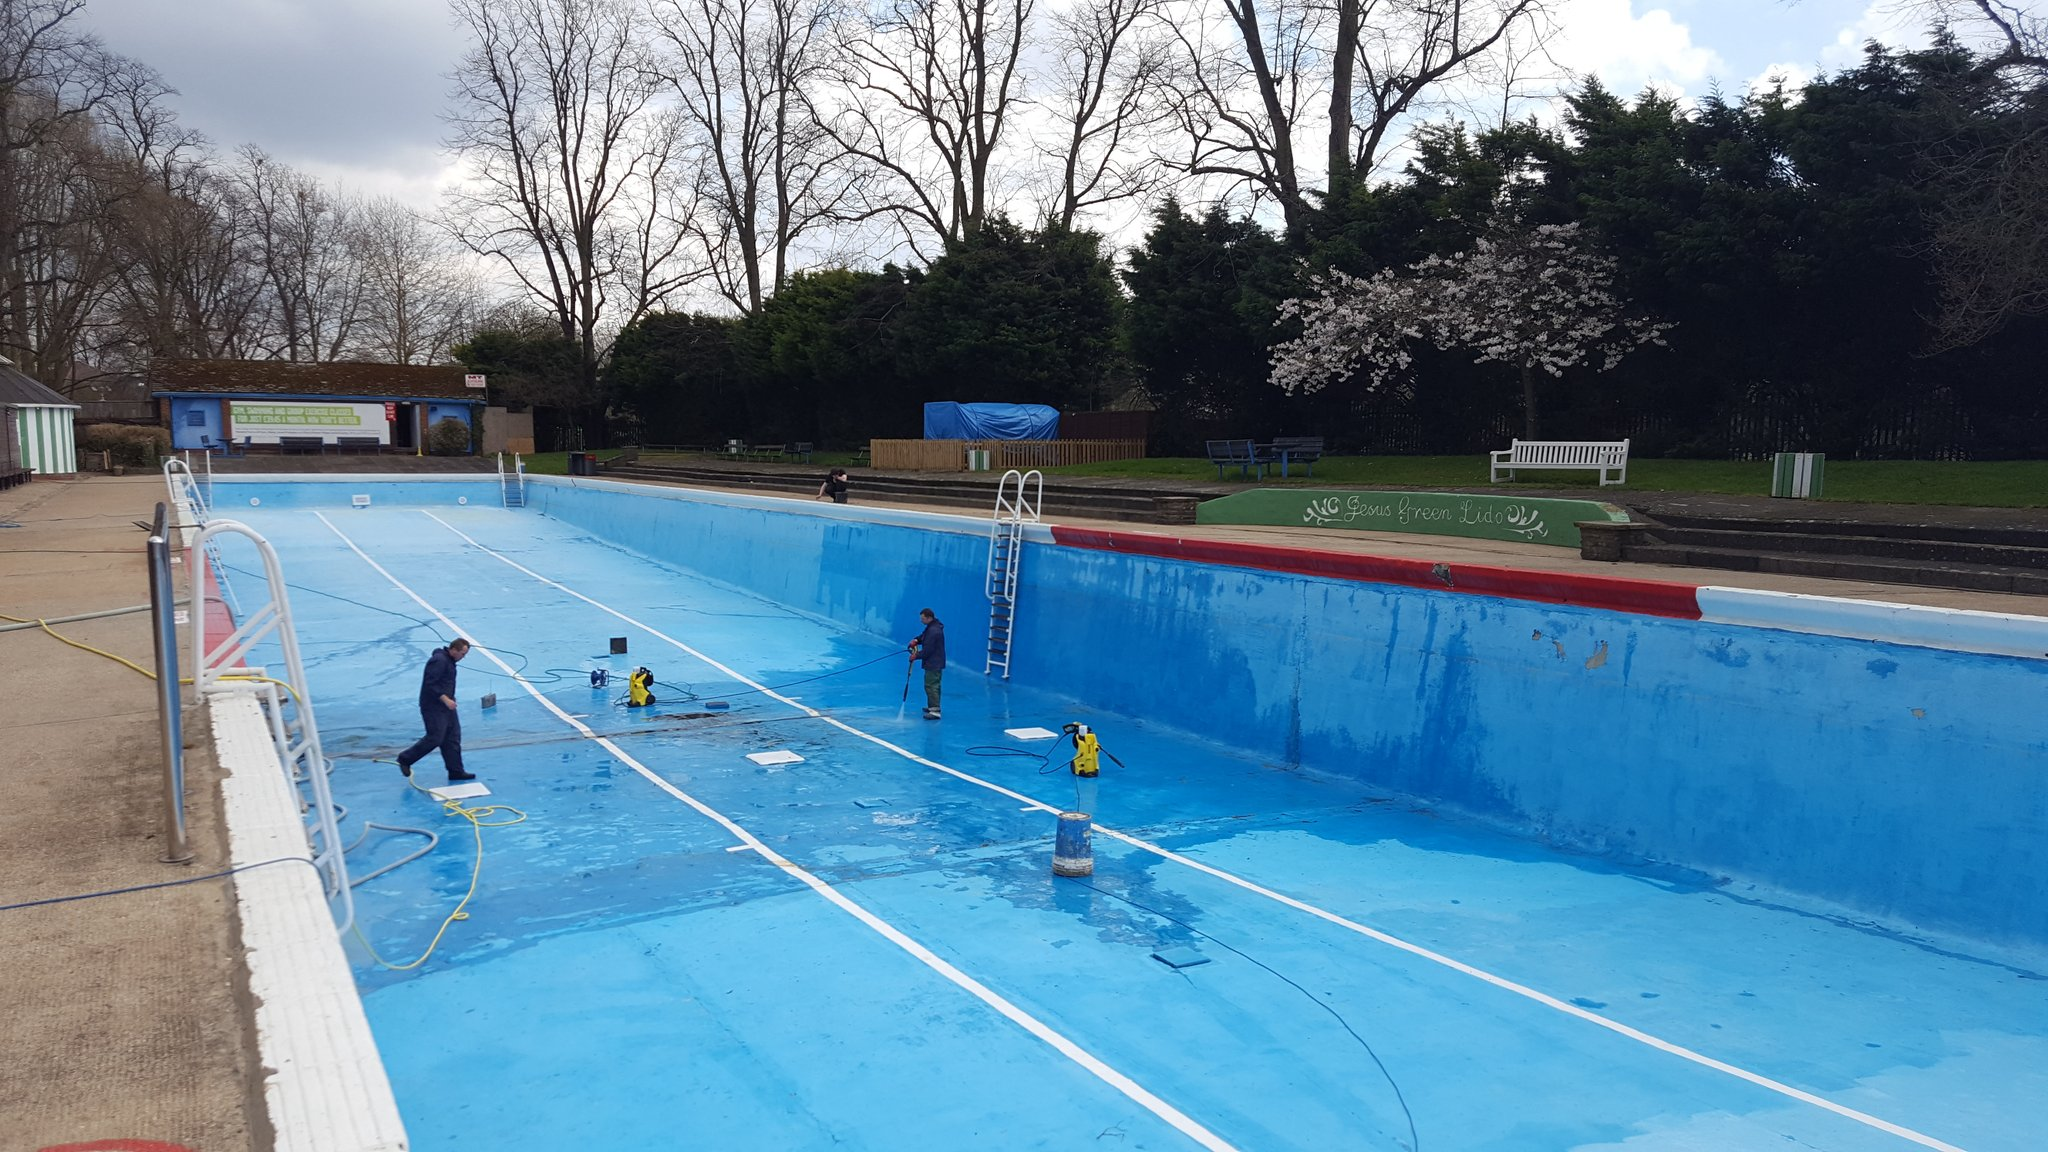 Jesus Green Lido On Twitter The Pool Is Finally Drained